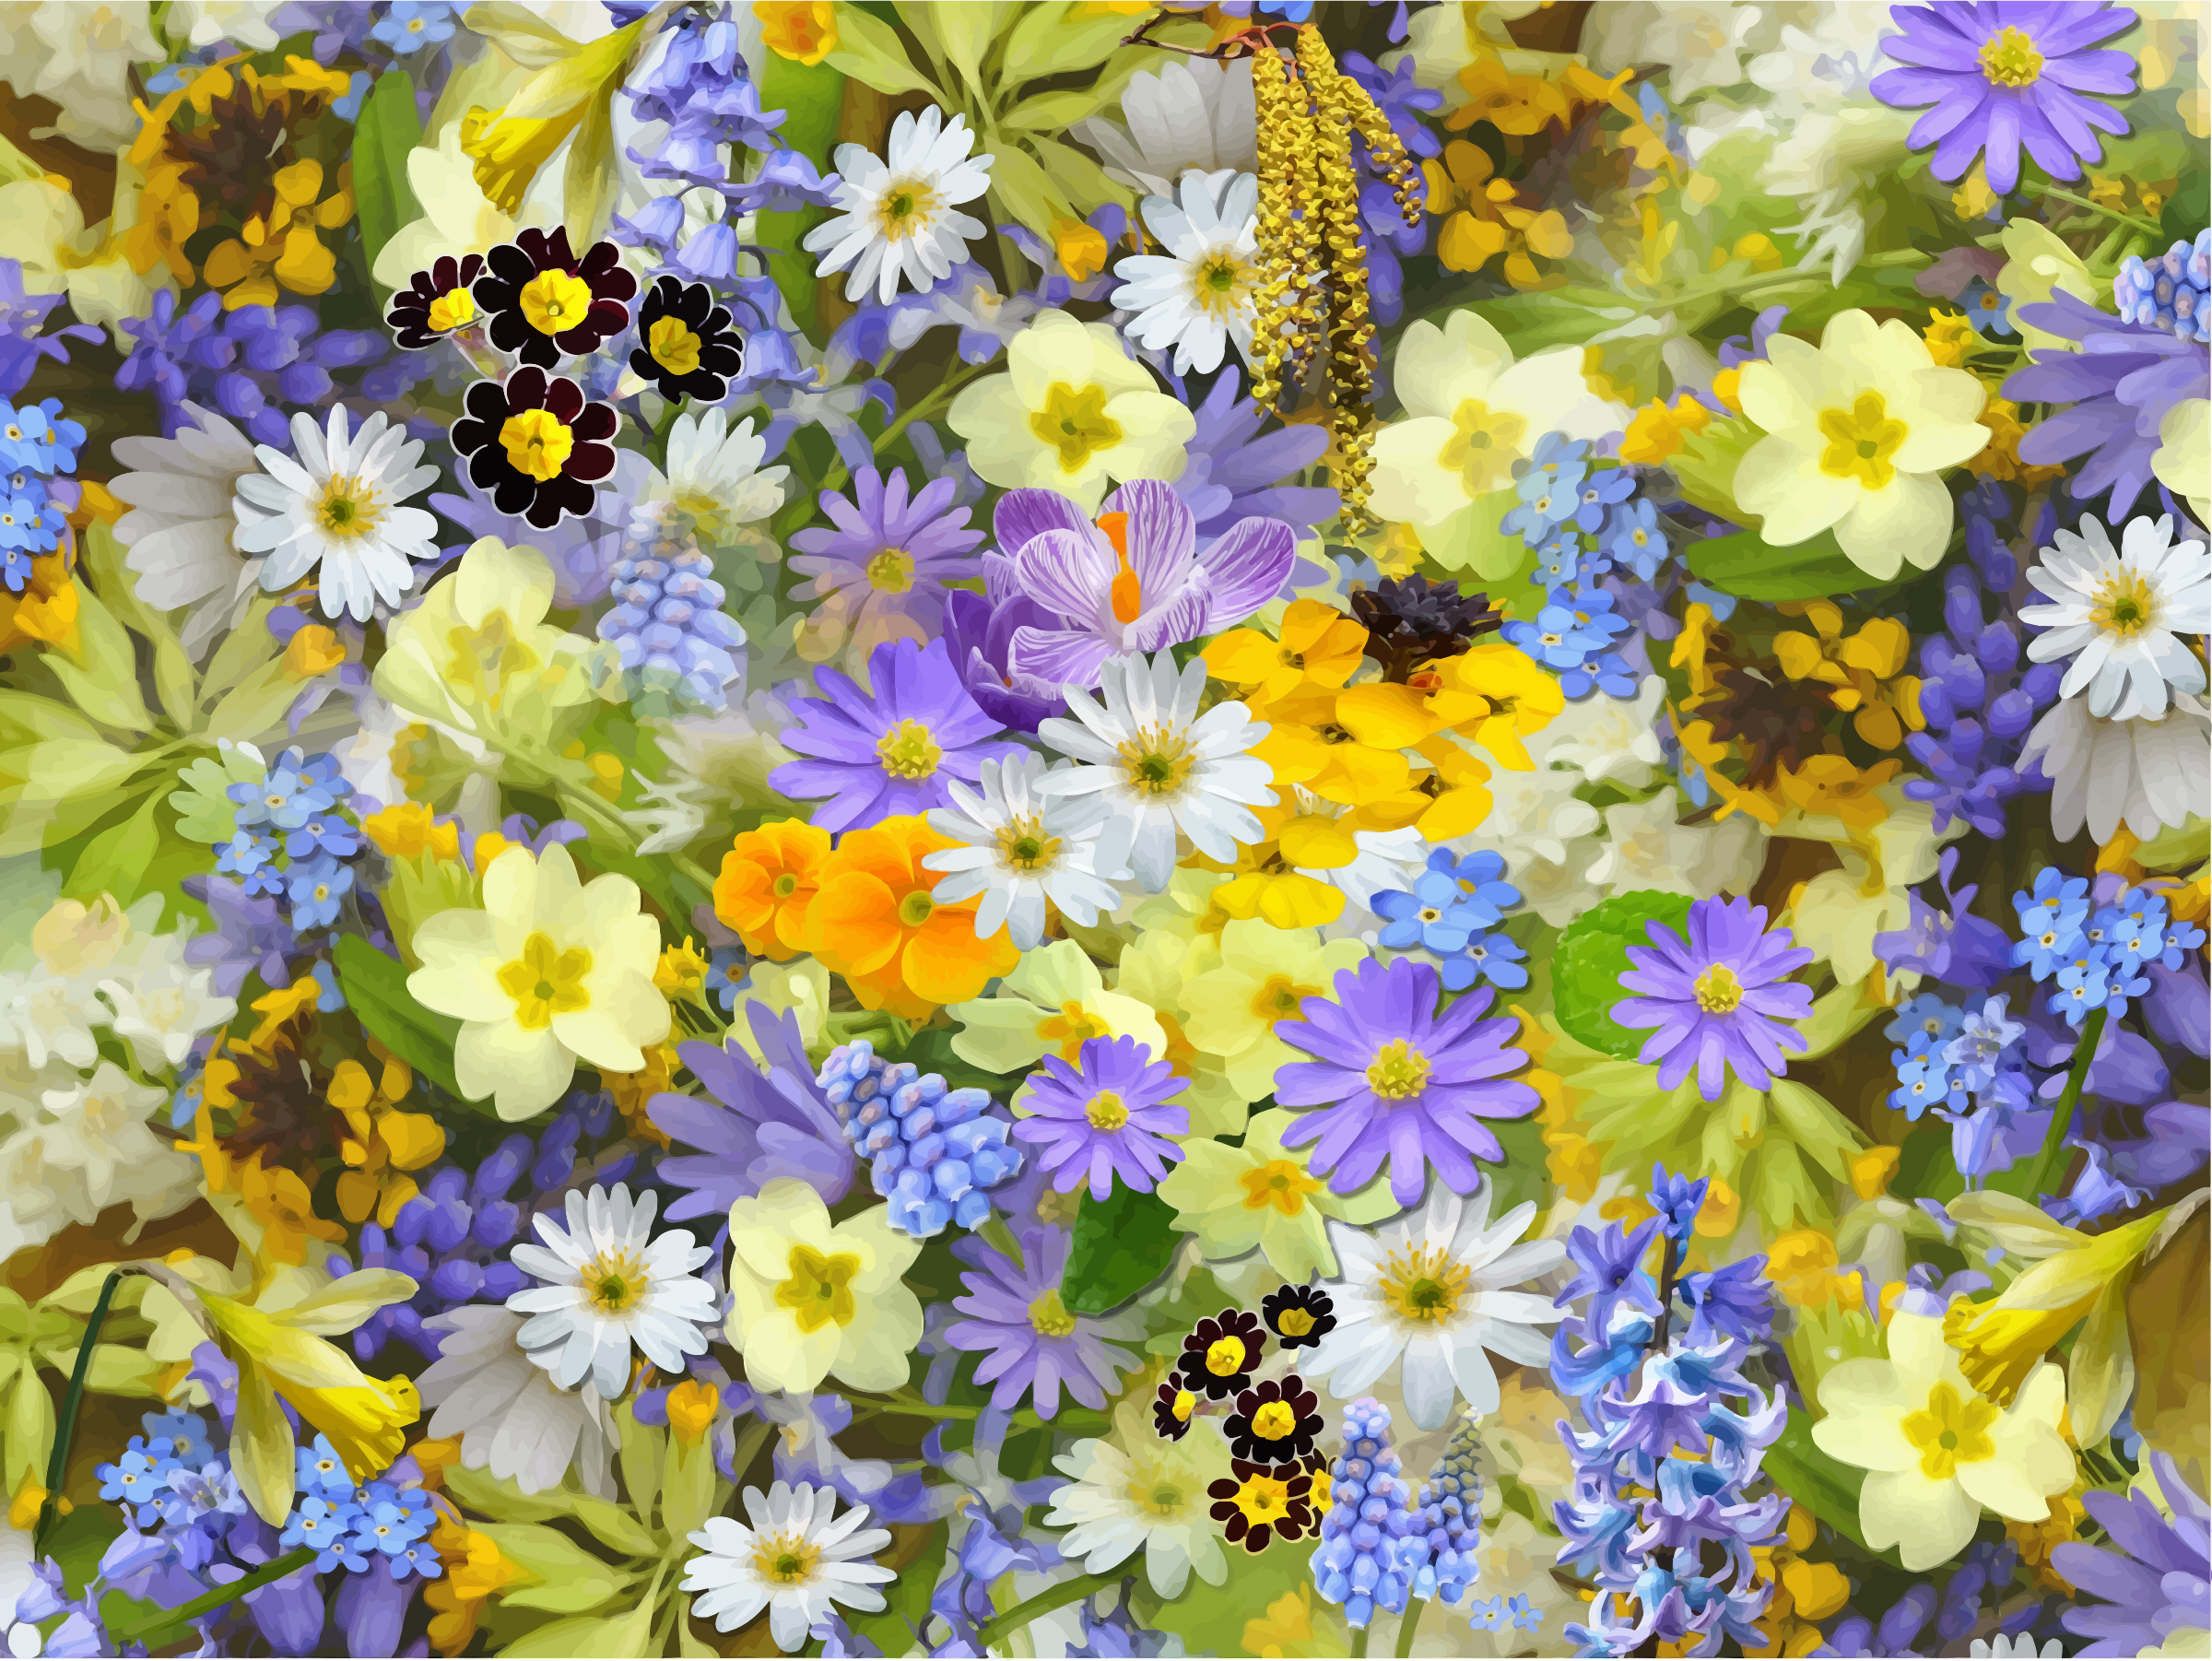 Floral background 8 by Firkin